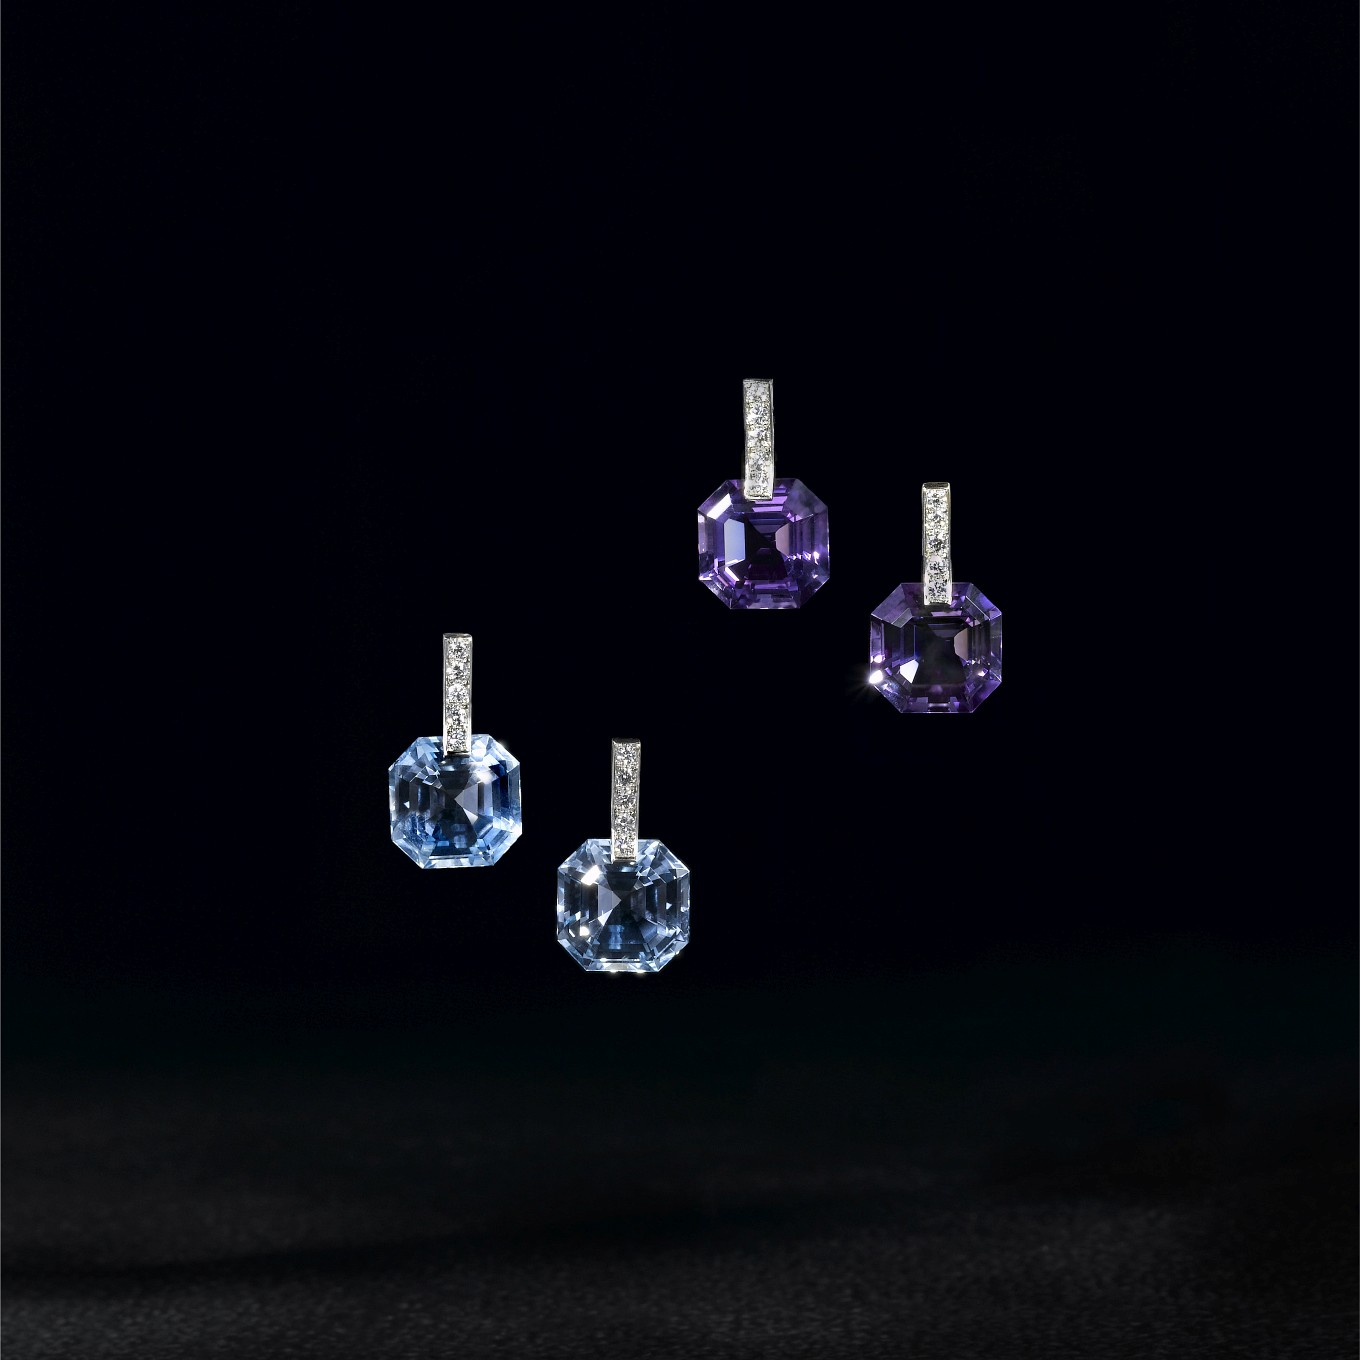 OCTAGONAL BLUE TOPAZ & DIAMOND EARRINGS. OCTAGONAL AMETHYST & DIAMOND EARRINGS